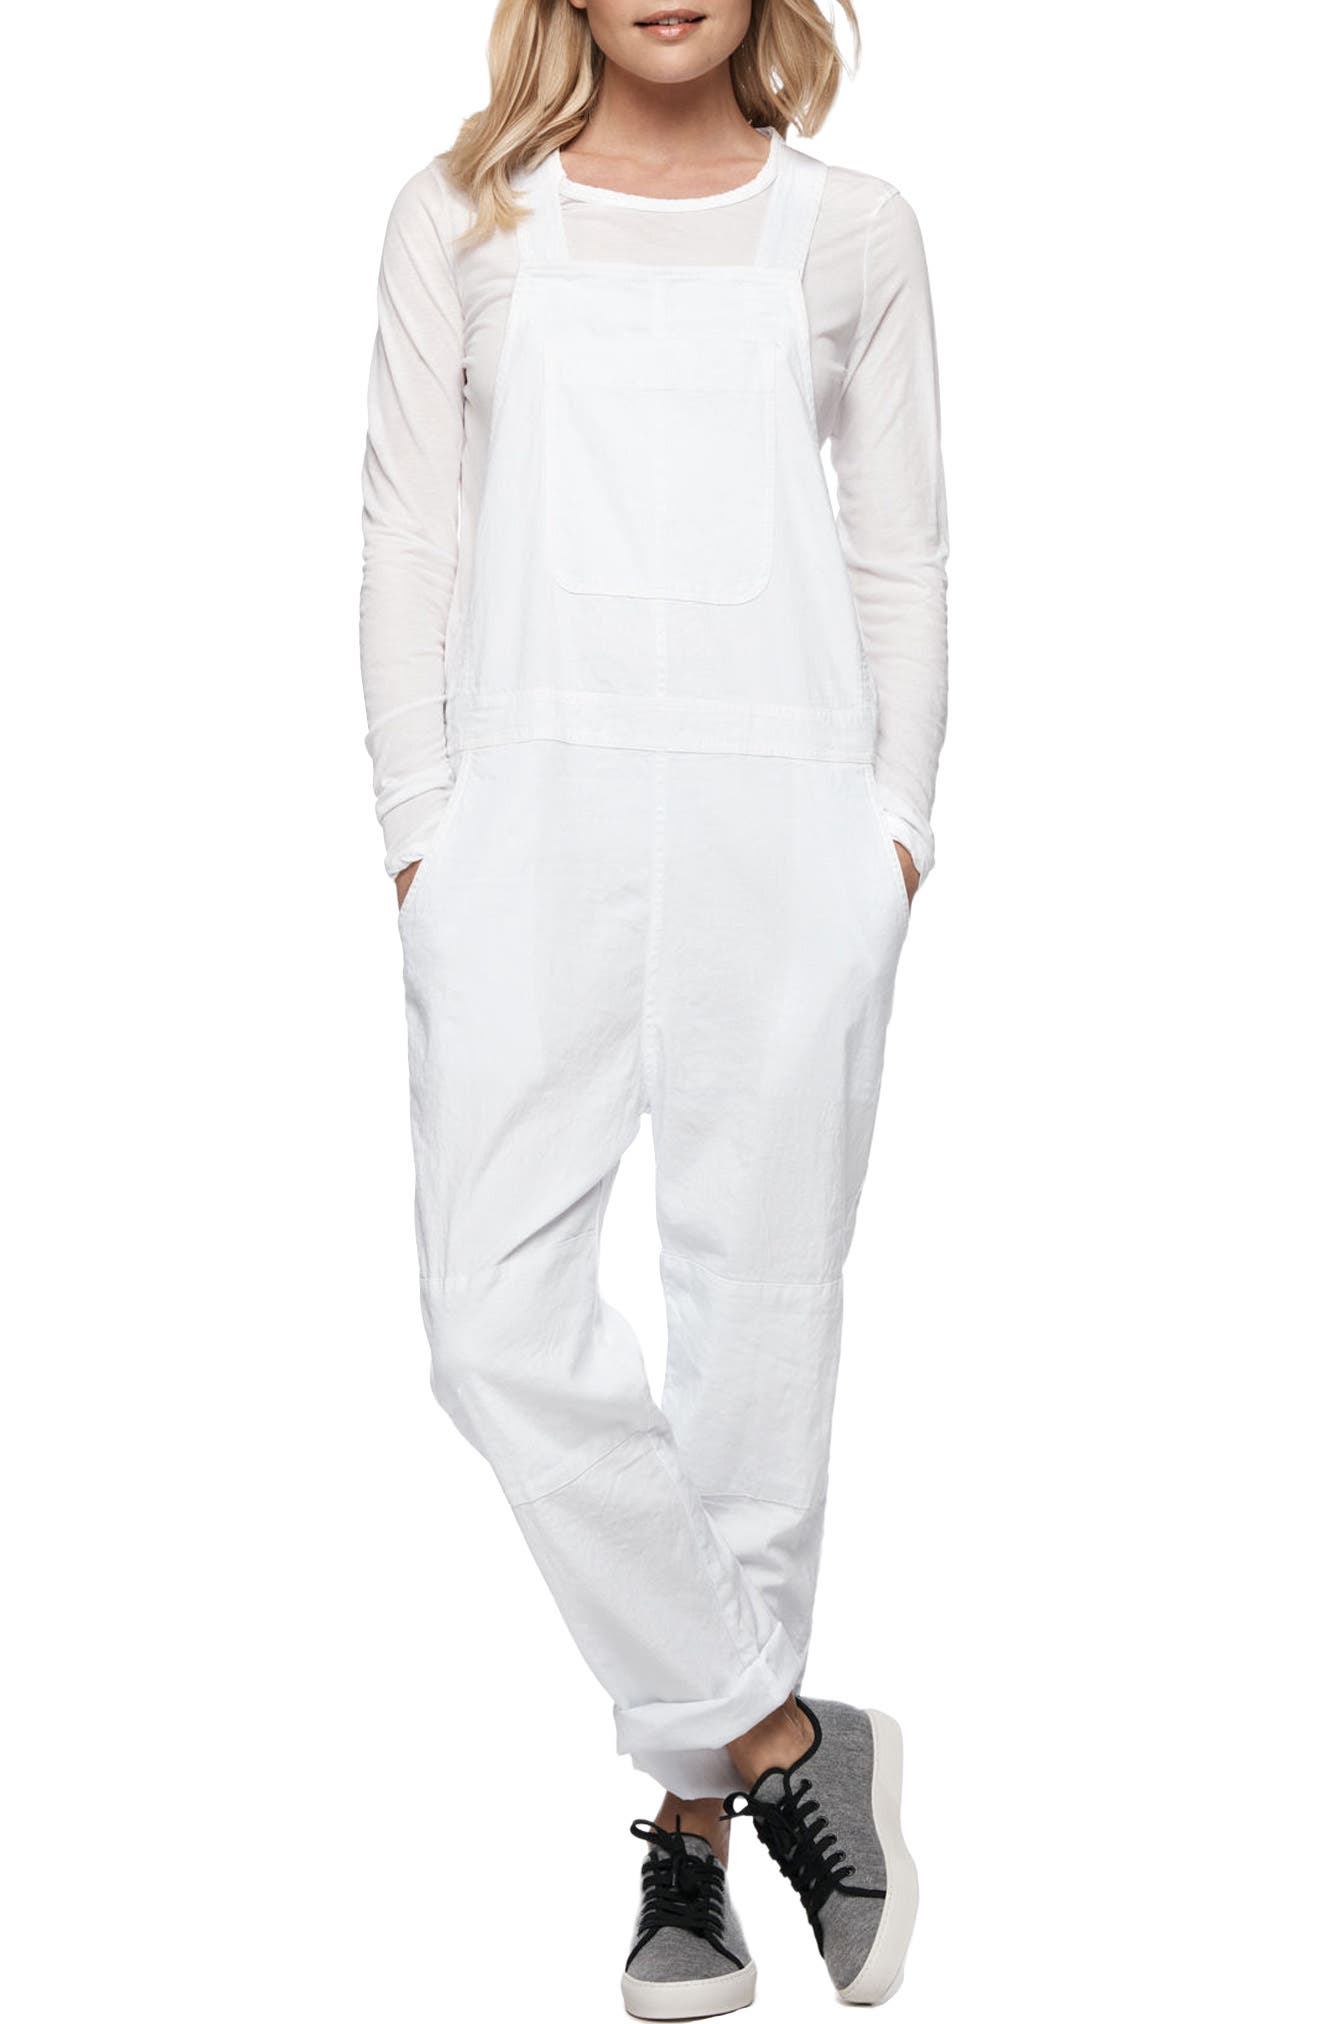 Alternate Image 1 Selected - James Perse Cotton Linen Overalls